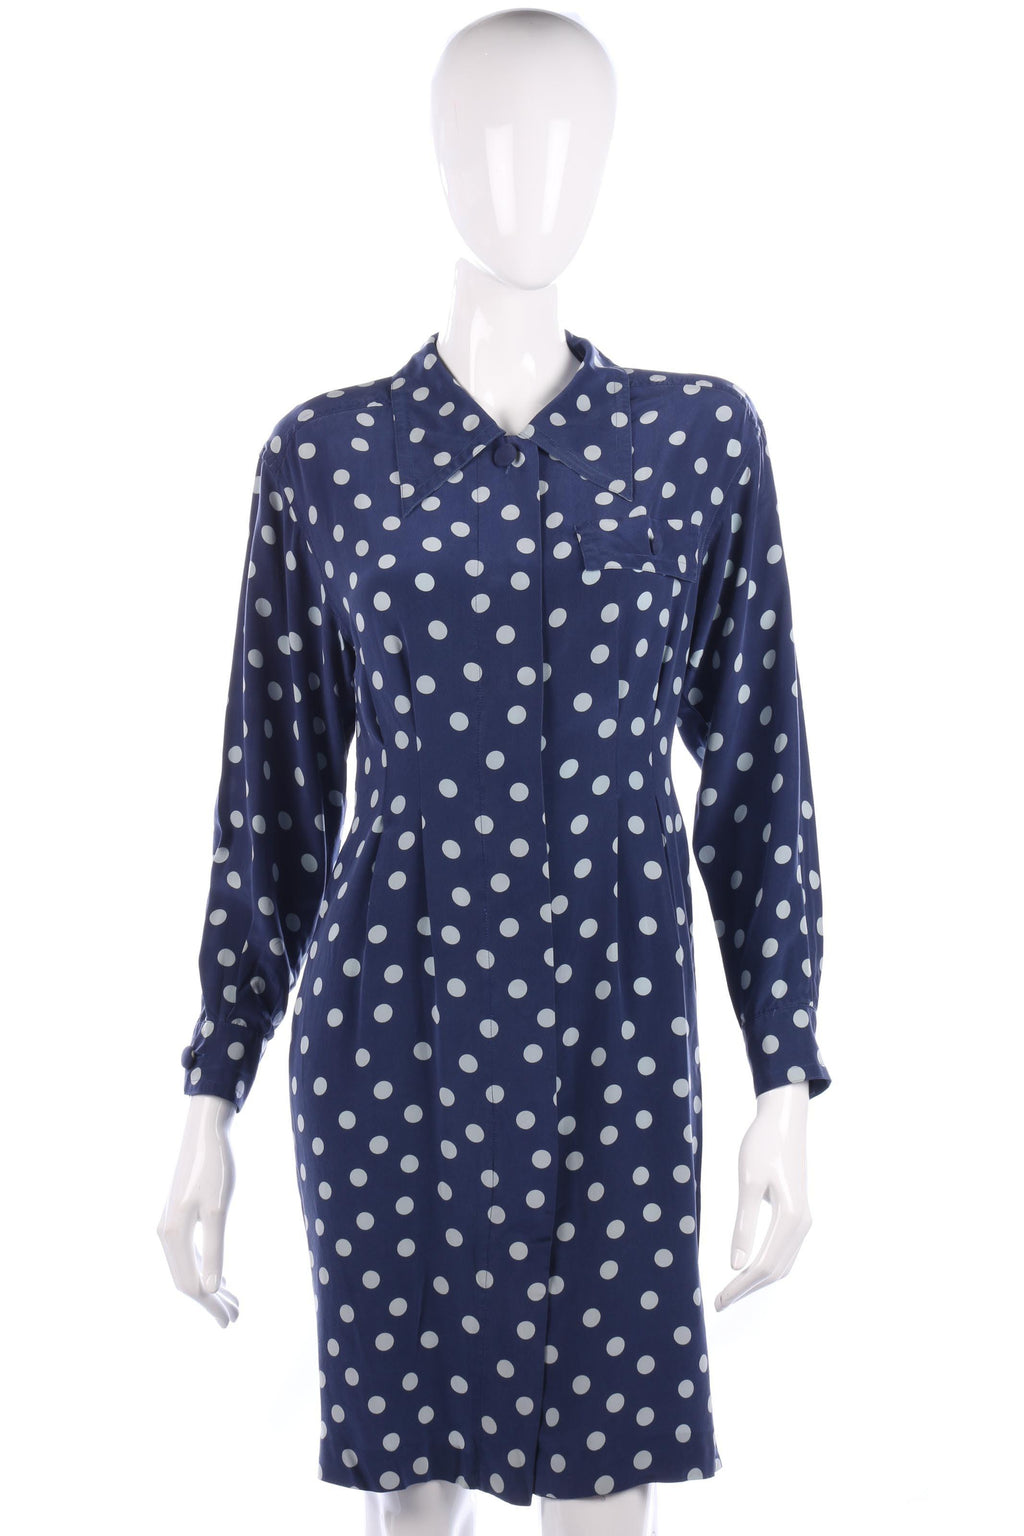 Adrianna Papéll Silk Polkadot Dress Blue Size M